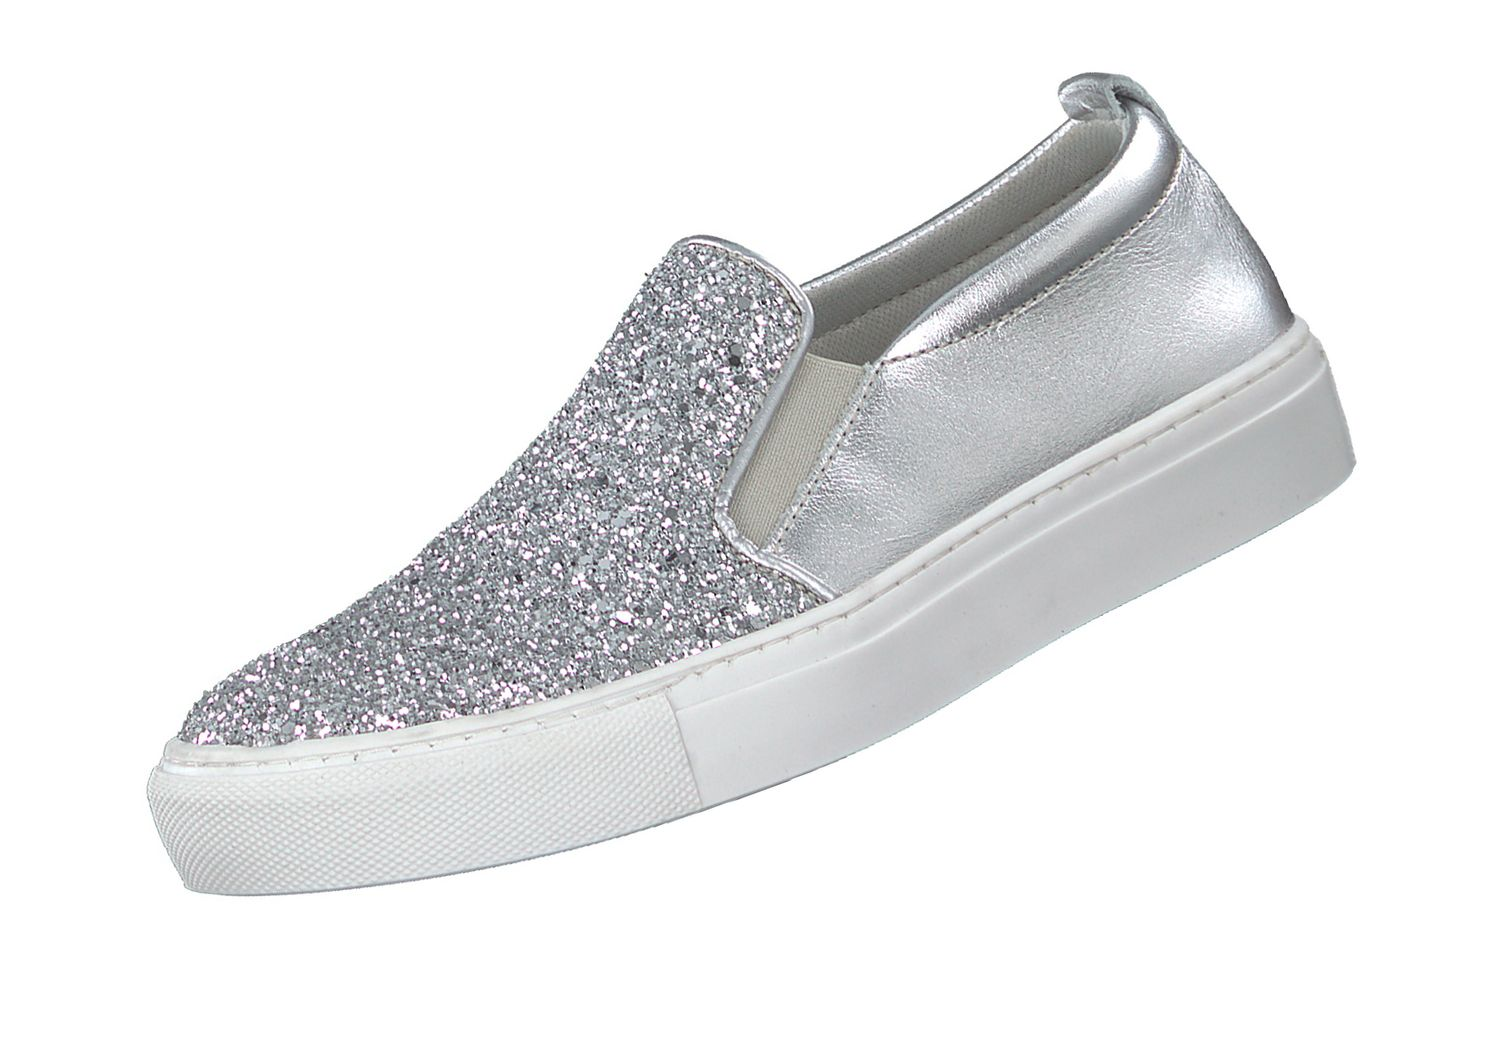 Tamaris Damen Slipper 24646 Silber 919 Slip On